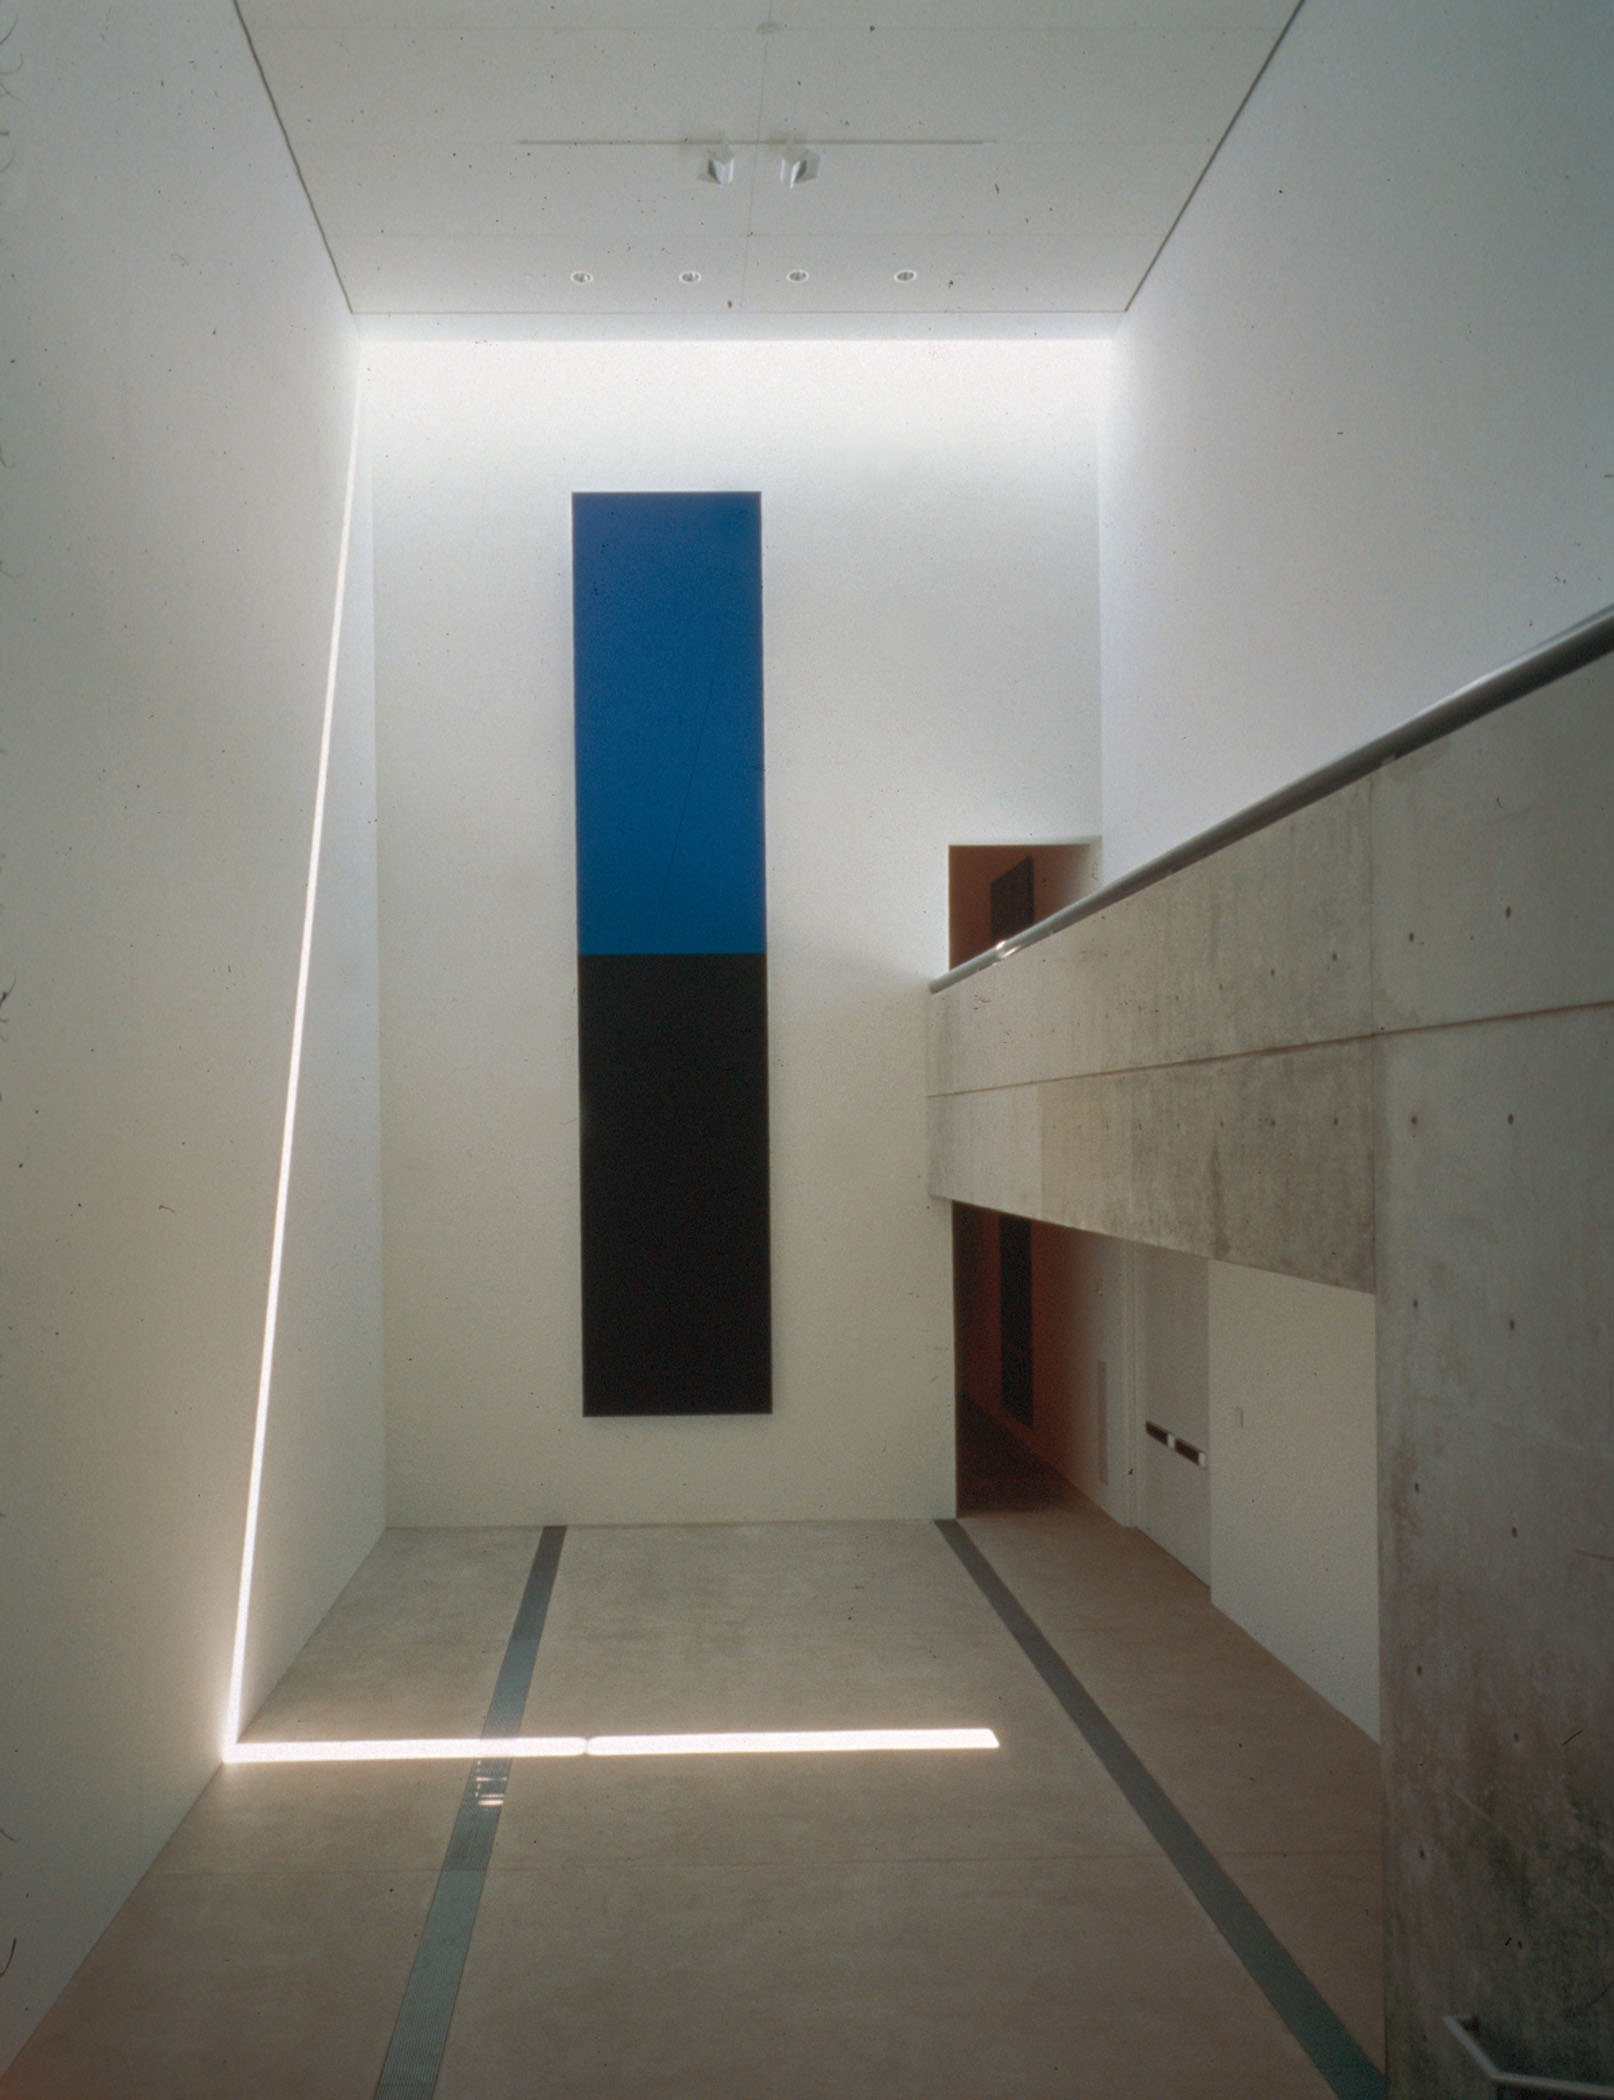 Ellsworth Kelly Blue Black 2000 Painted aluminum Pulitzer Foundations for the Arts, Saint Louis  336 x 70 x 2.5 inches      View More Ellsworth Kelly